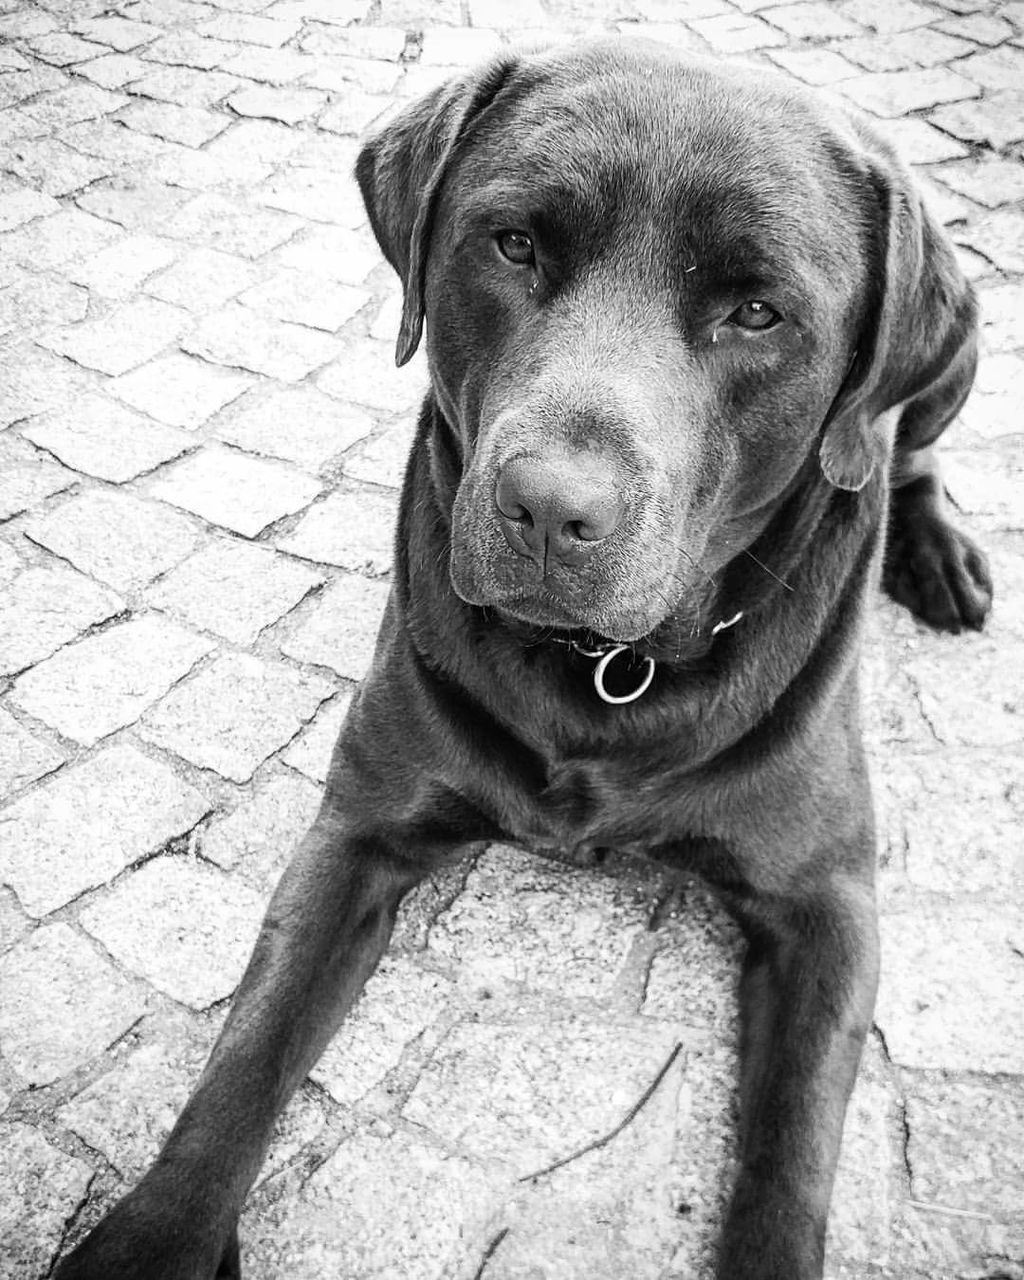 dog, pets, one animal, domestic animals, animal themes, outdoors, mammal, day, looking at camera, sitting, portrait, no people, weimaraner, close-up